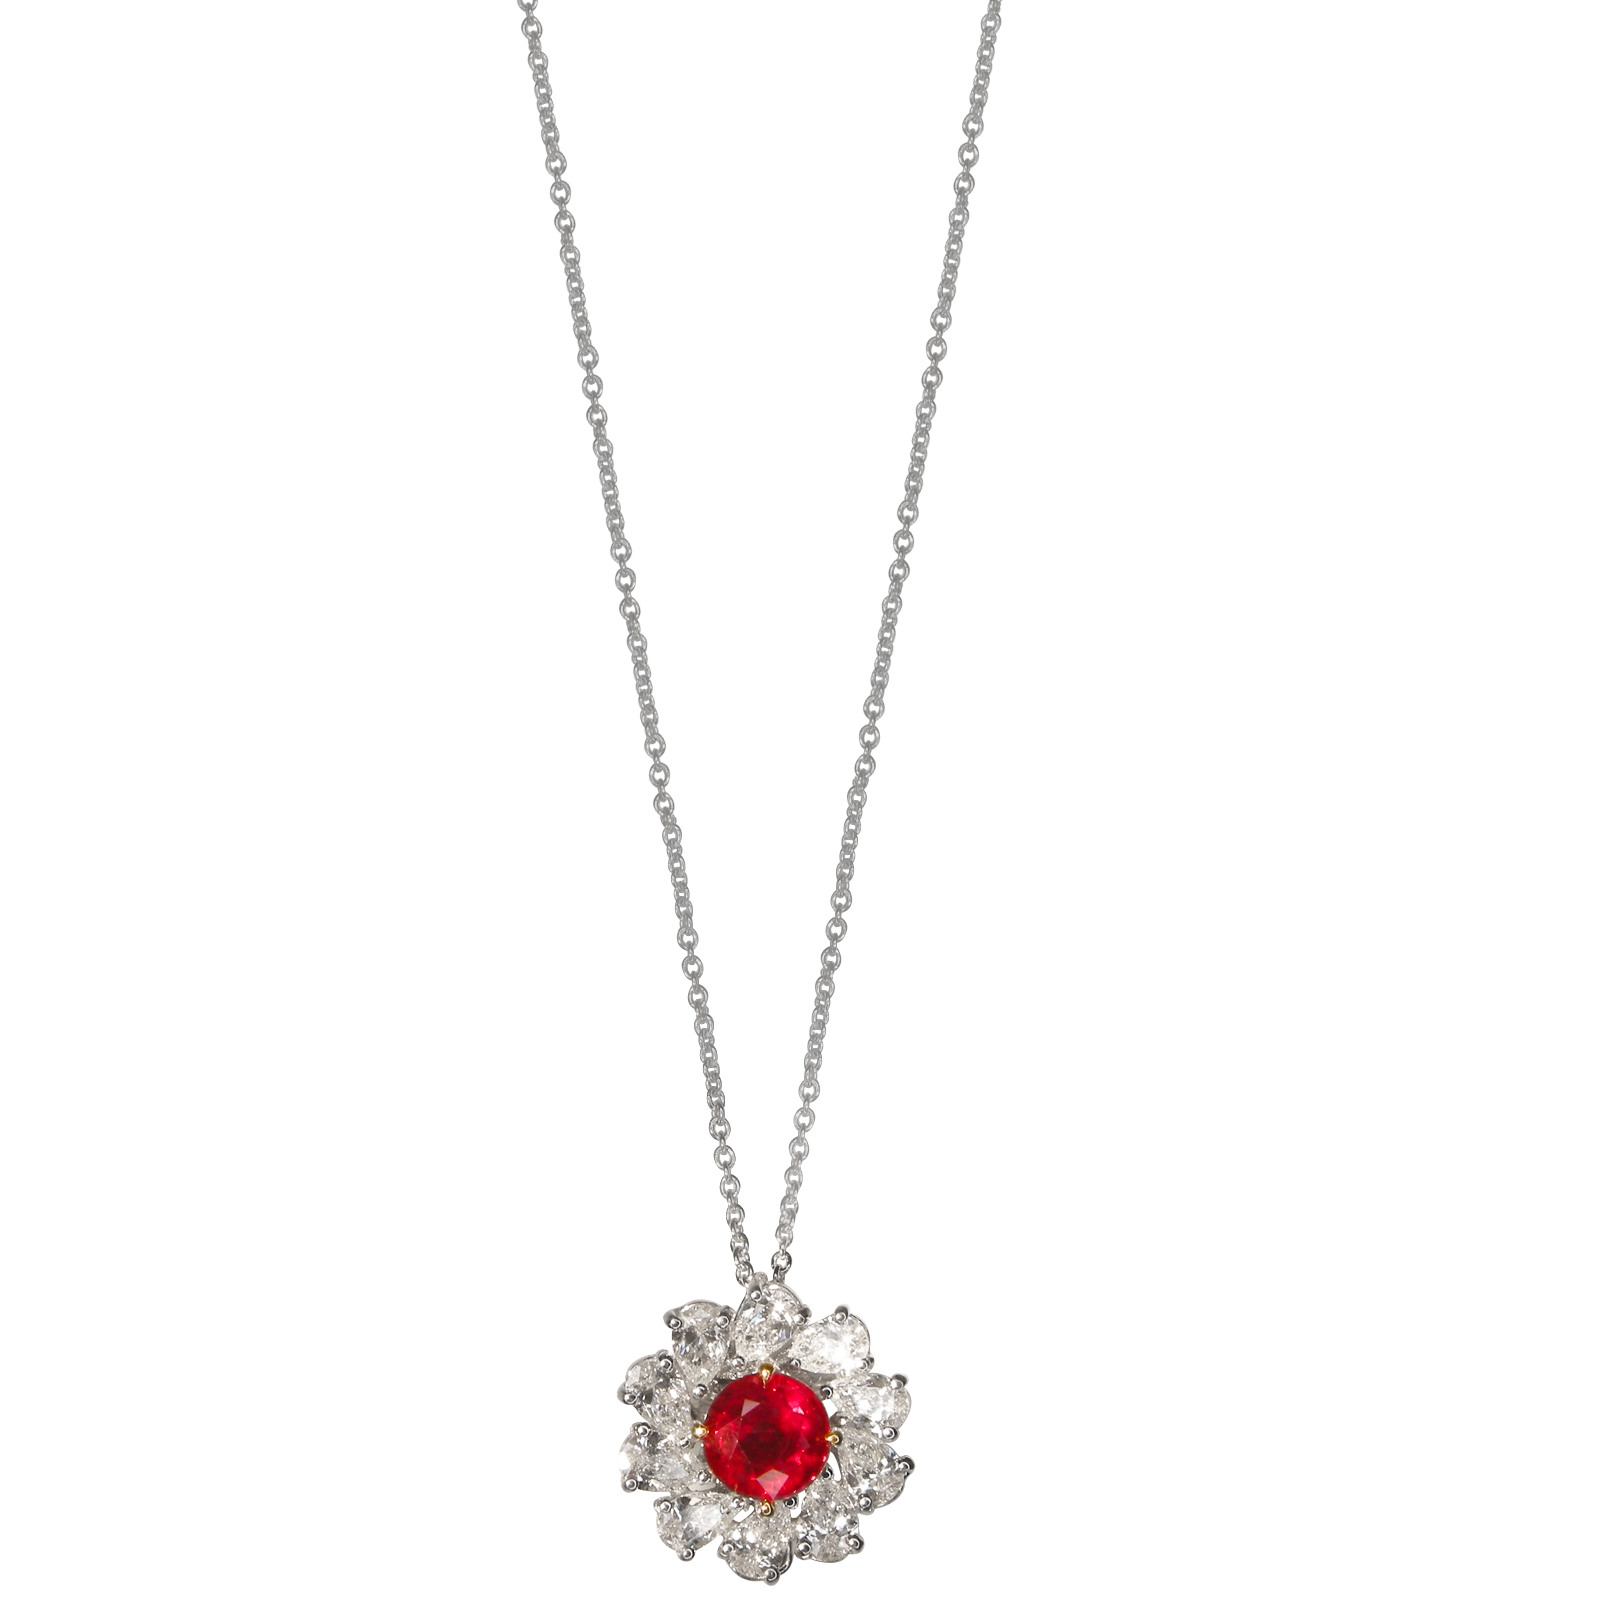 RUBY AND DIAMOND SUN NECKLACE BESPOKE FINE JEWELLERY BY SHAHINA HATTA HONG KONG